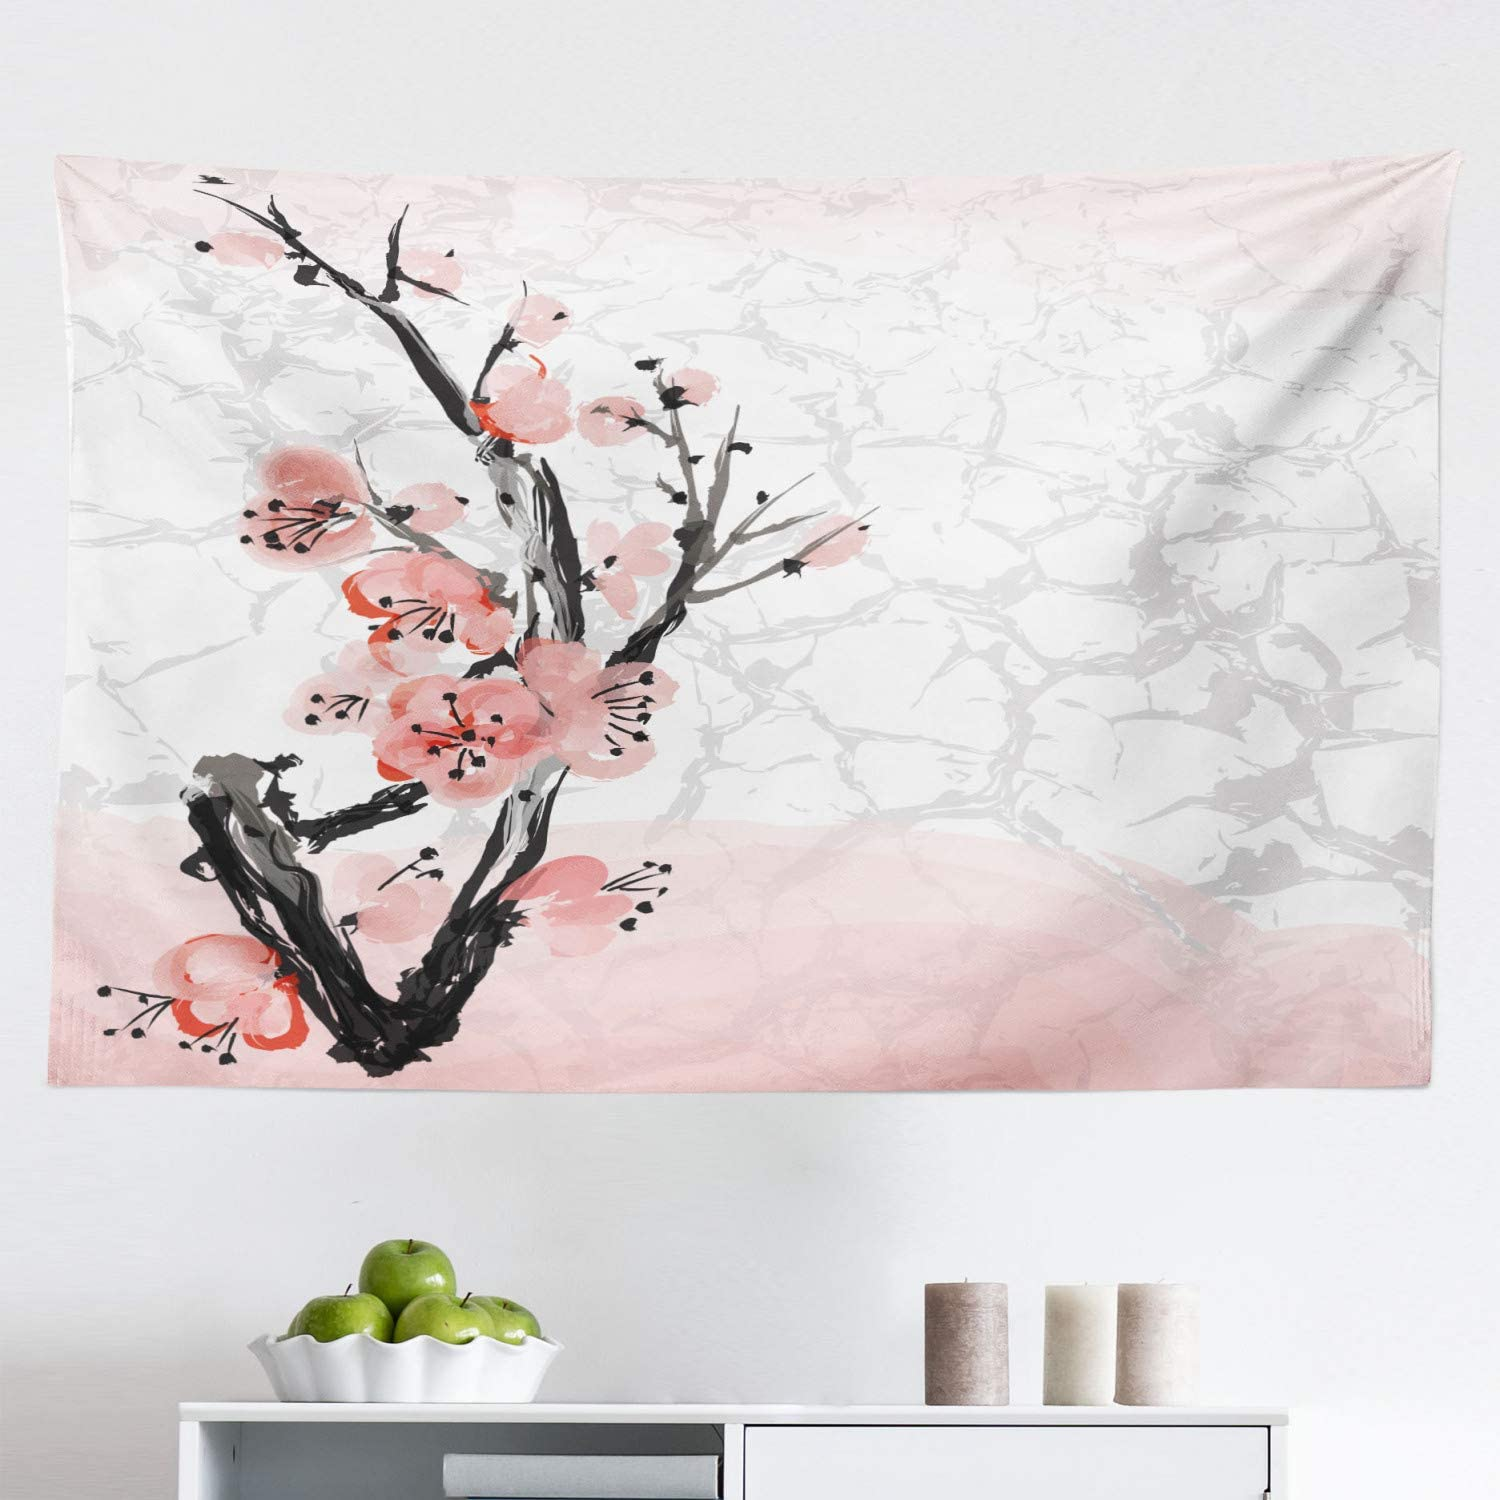 Amazon Com Lunarable Floral Tapestry Japanese Cherry Blossom Sakura Tree Branch Soft Pastel Watercolor Print Fabric Wall Hanging Decor For Bedroom Living Room Dorm 45 X 30 Pink Coral Home Kitchen